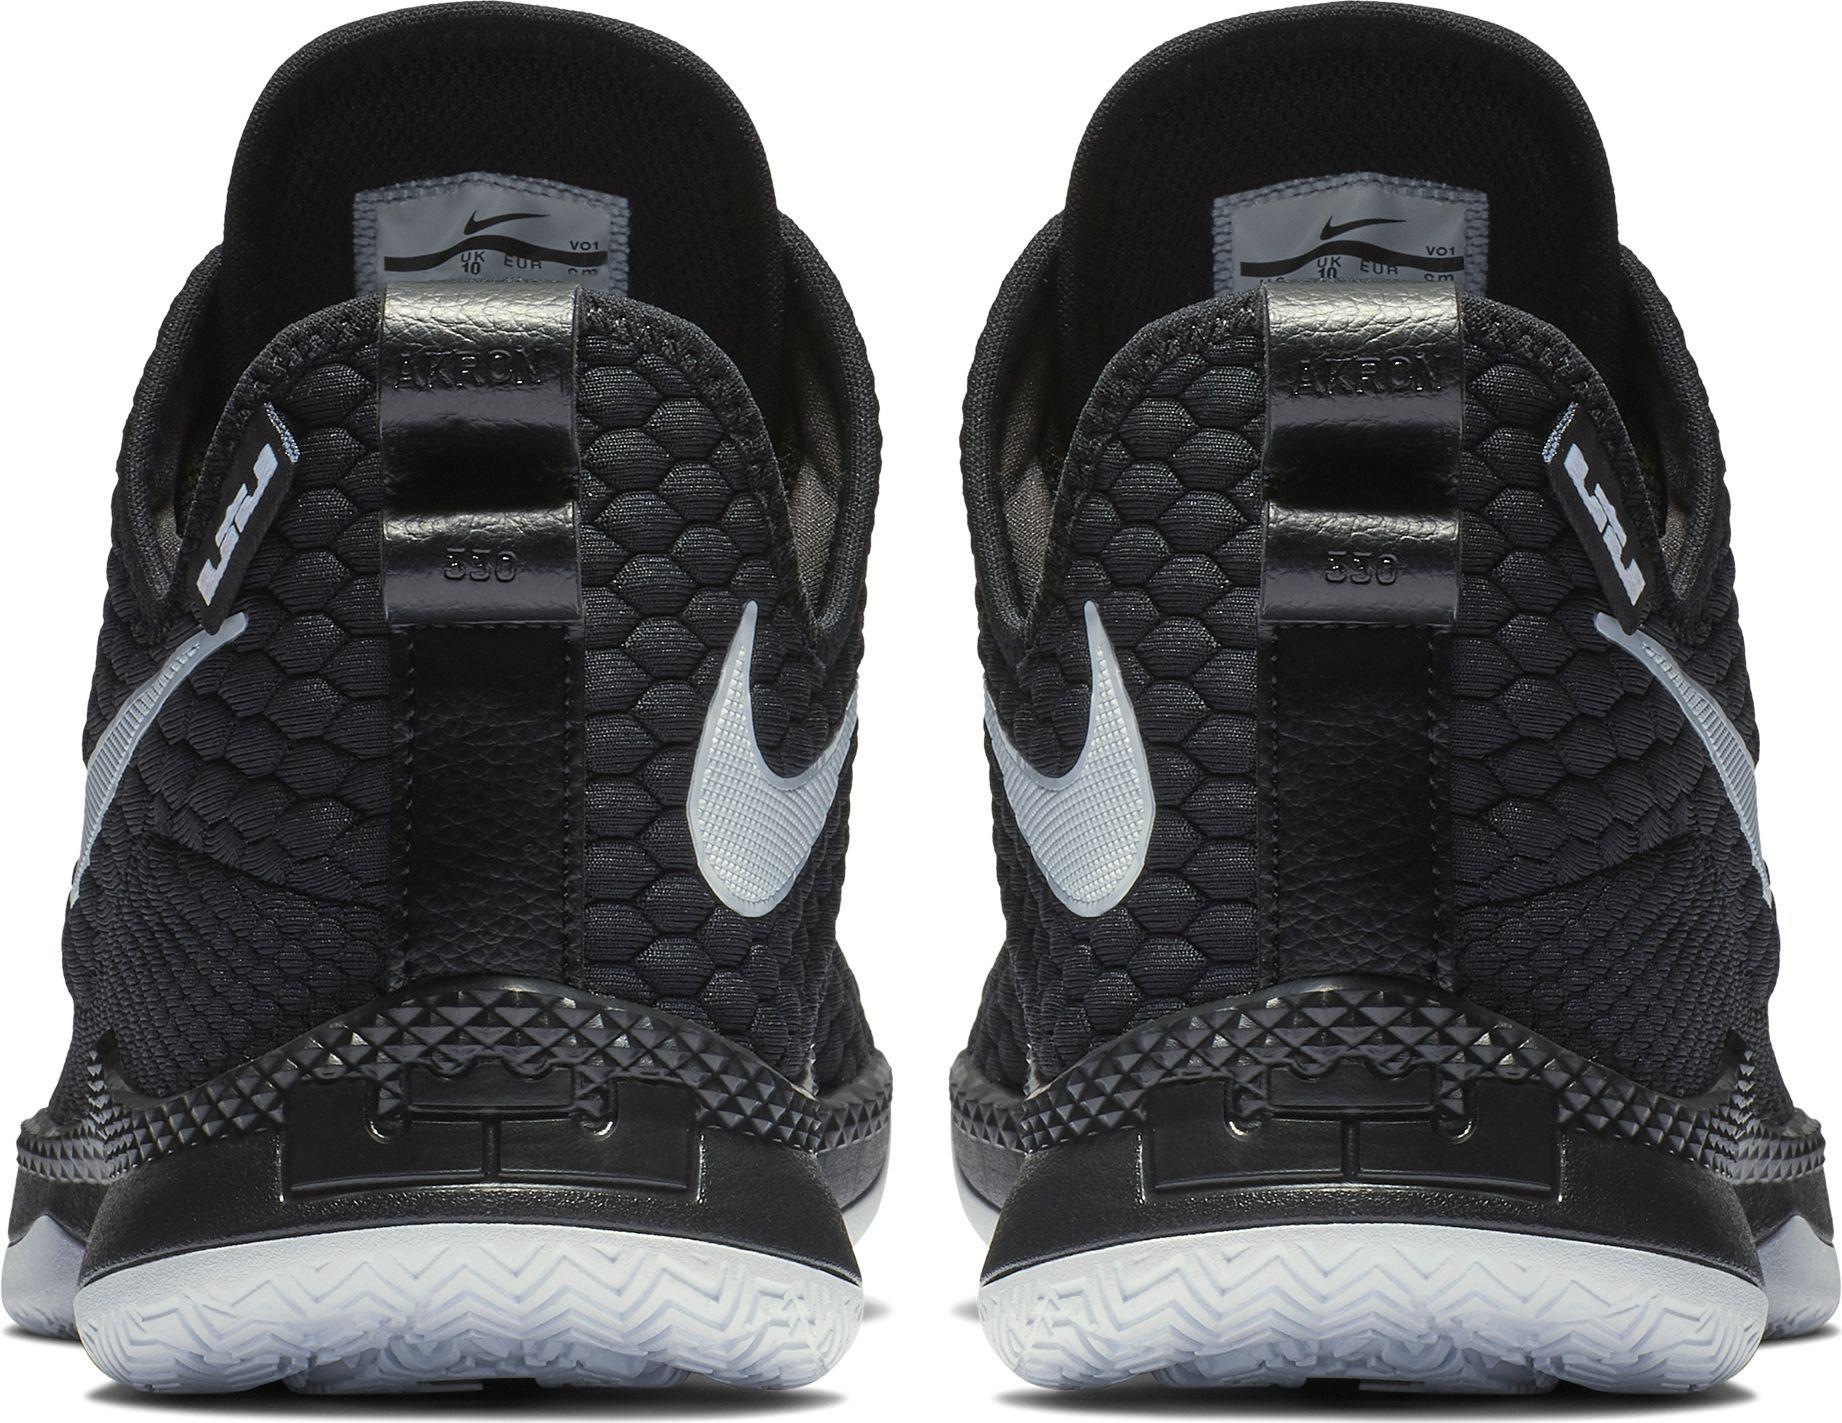 b6b0edbed54 Nike Lebron Witness Iii Basketball Shoes in Black for Men - Lyst